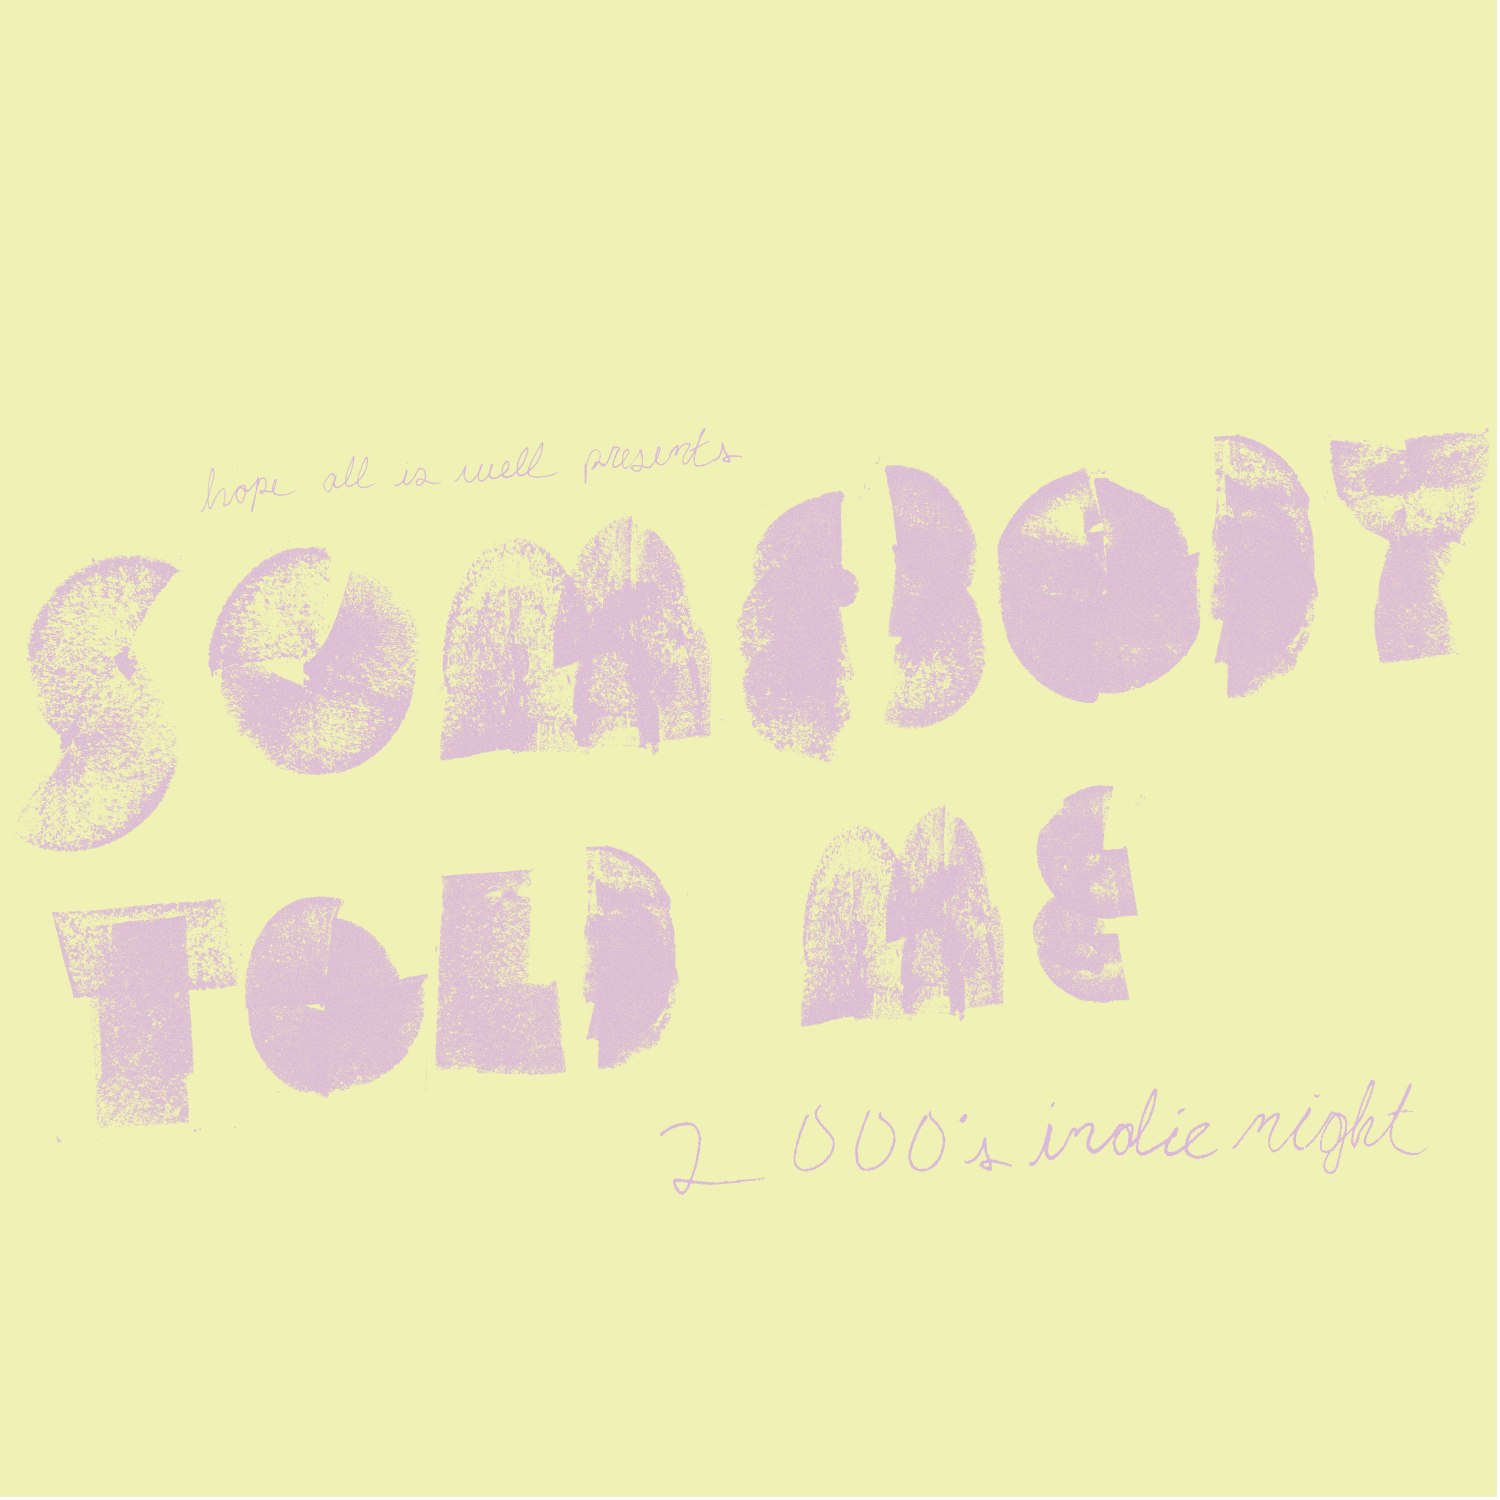 Somebody Told Me: 2000s Indie Night at Club Metronome